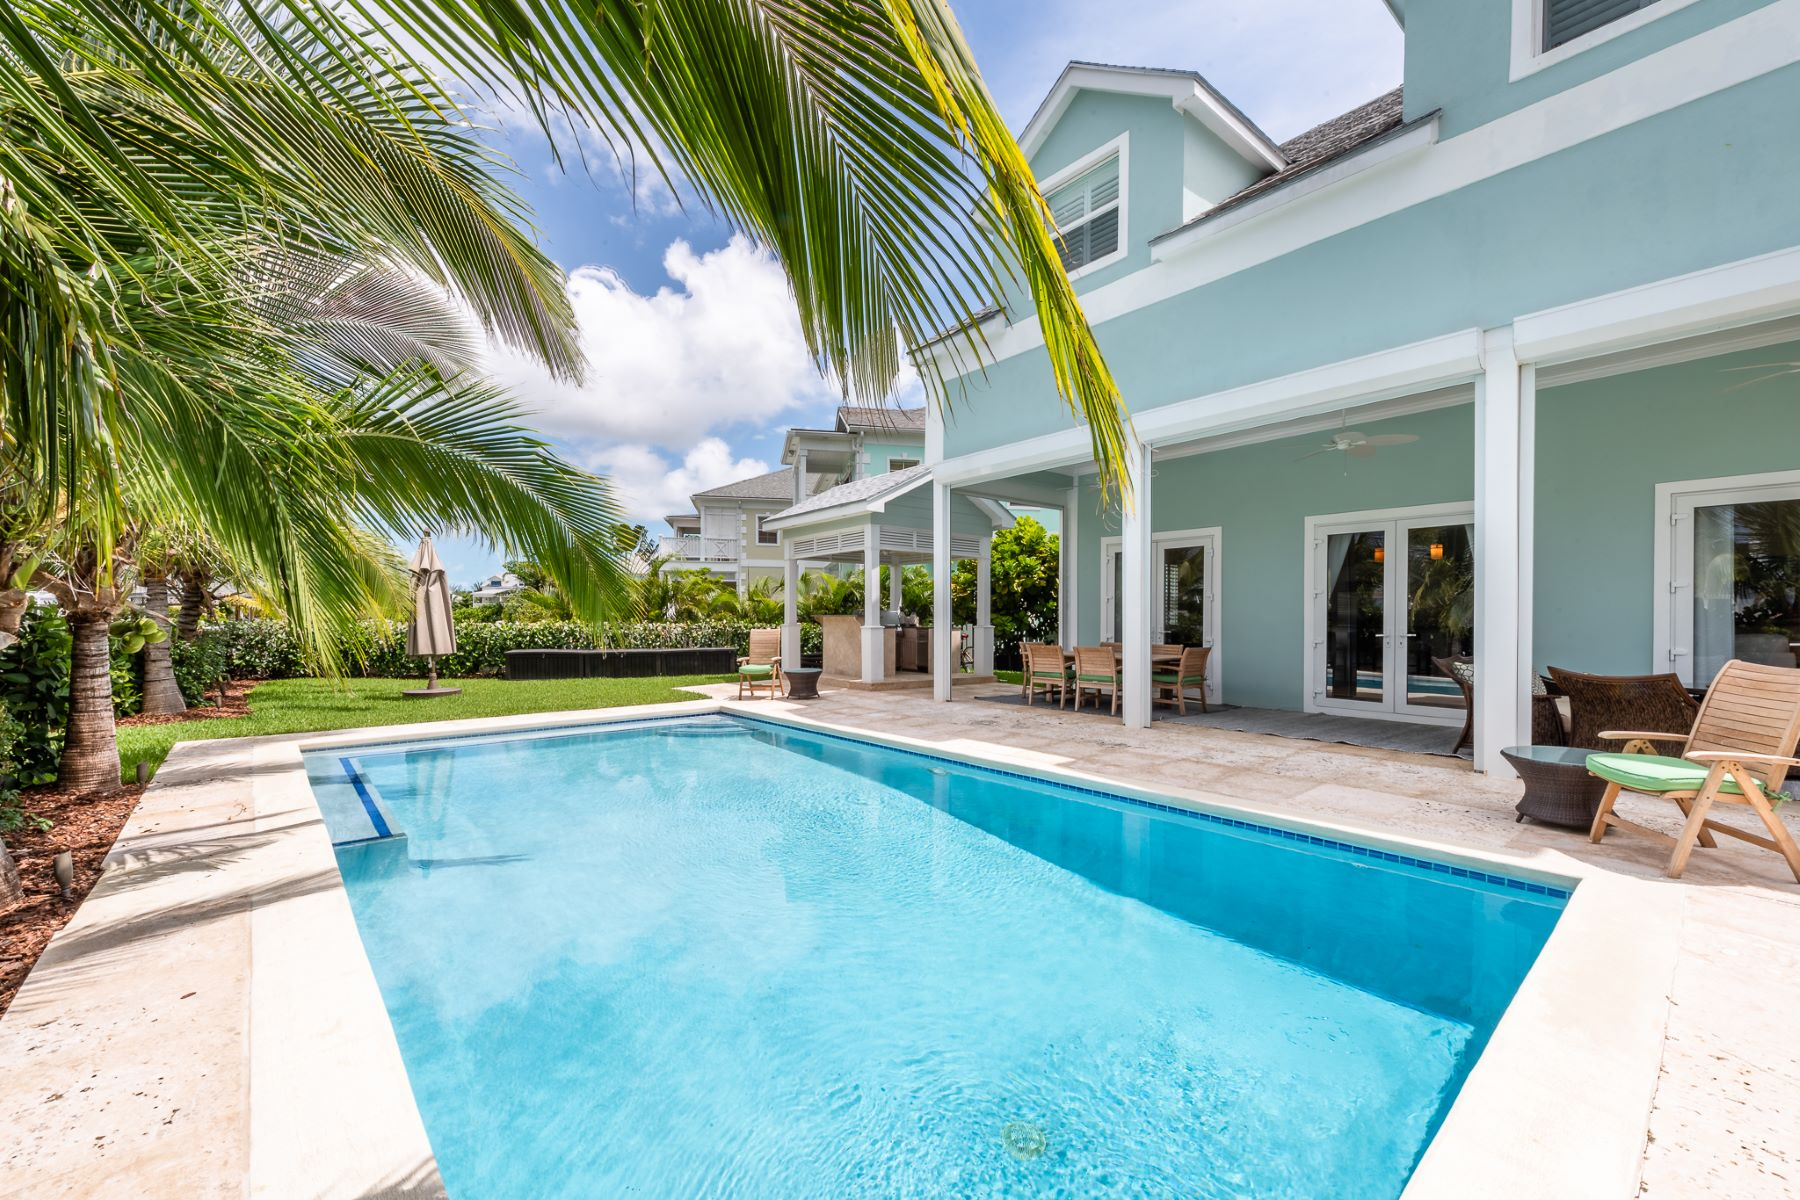 Single Family Home for Sale at 17B Royal Palm Cay, Sandyport Sandyport, Cable Beach, Nassau And Paradise Island Bahamas